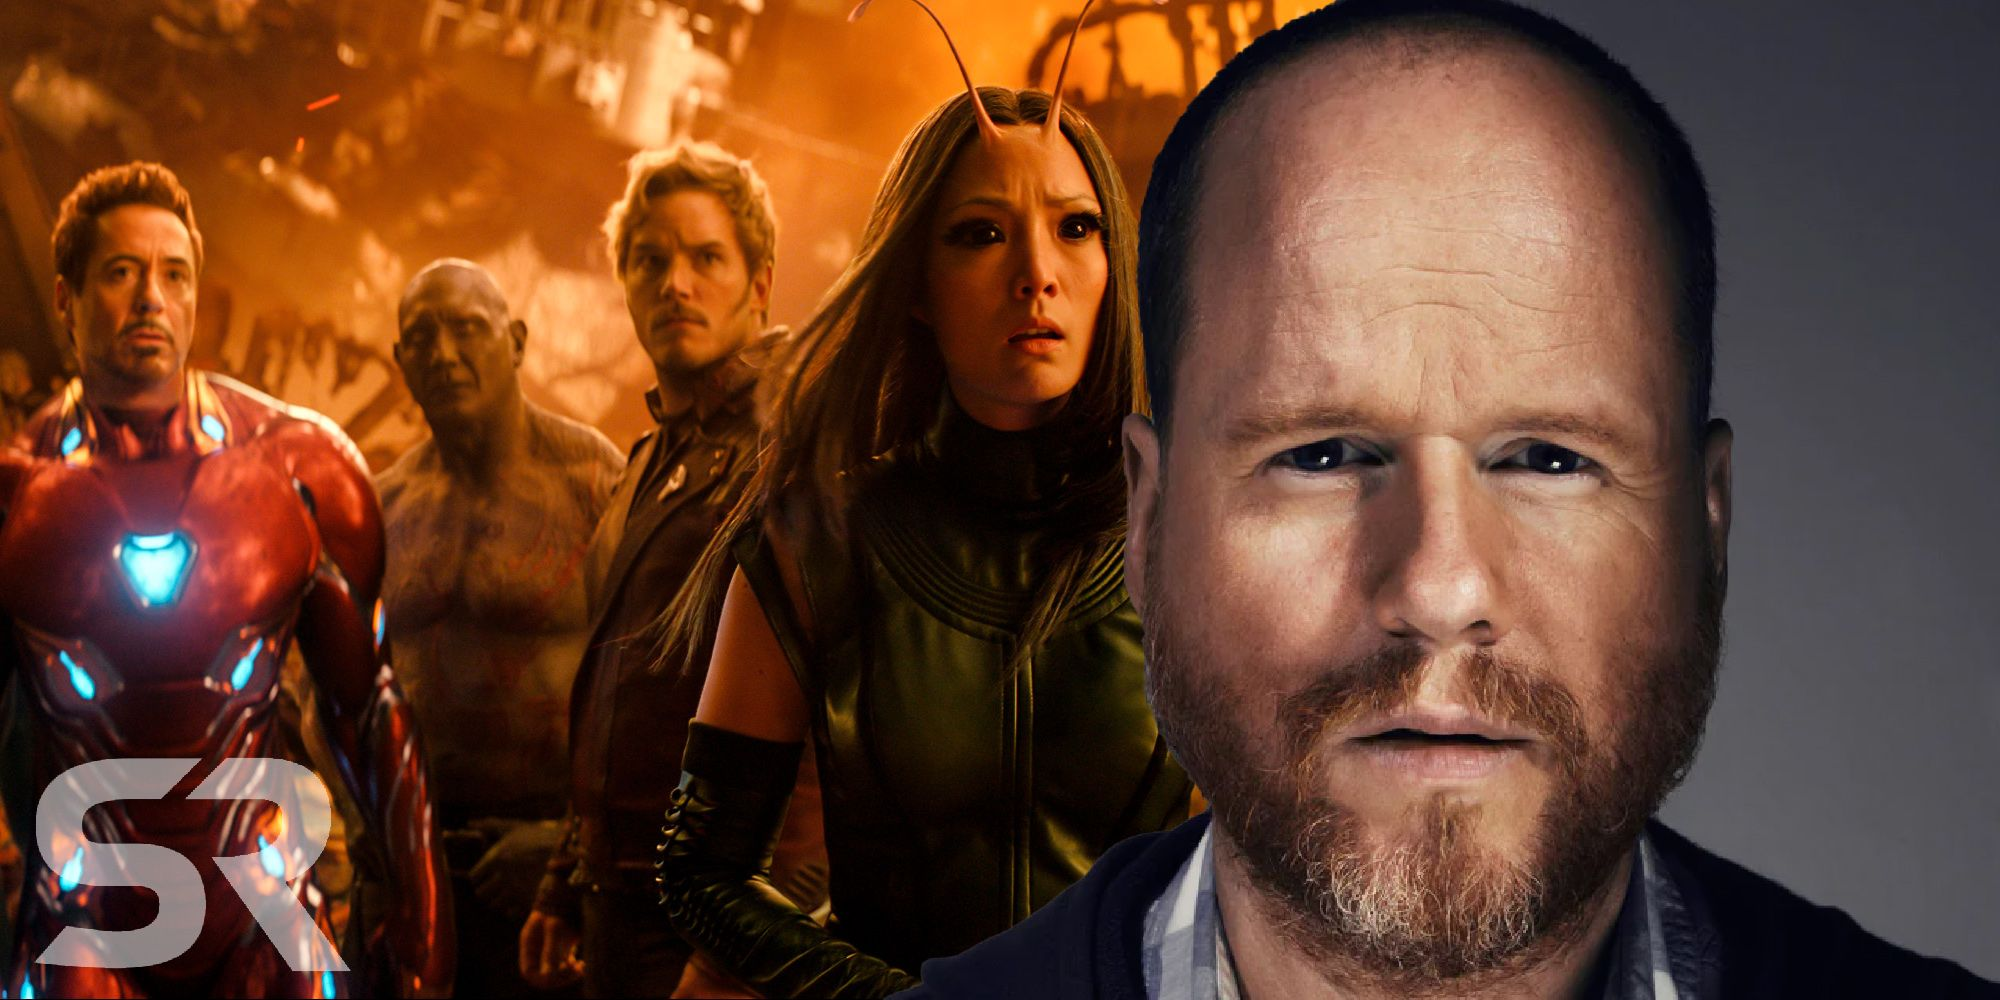 In360news Infinity War What If Joss Whedon Had Made Avengers 3